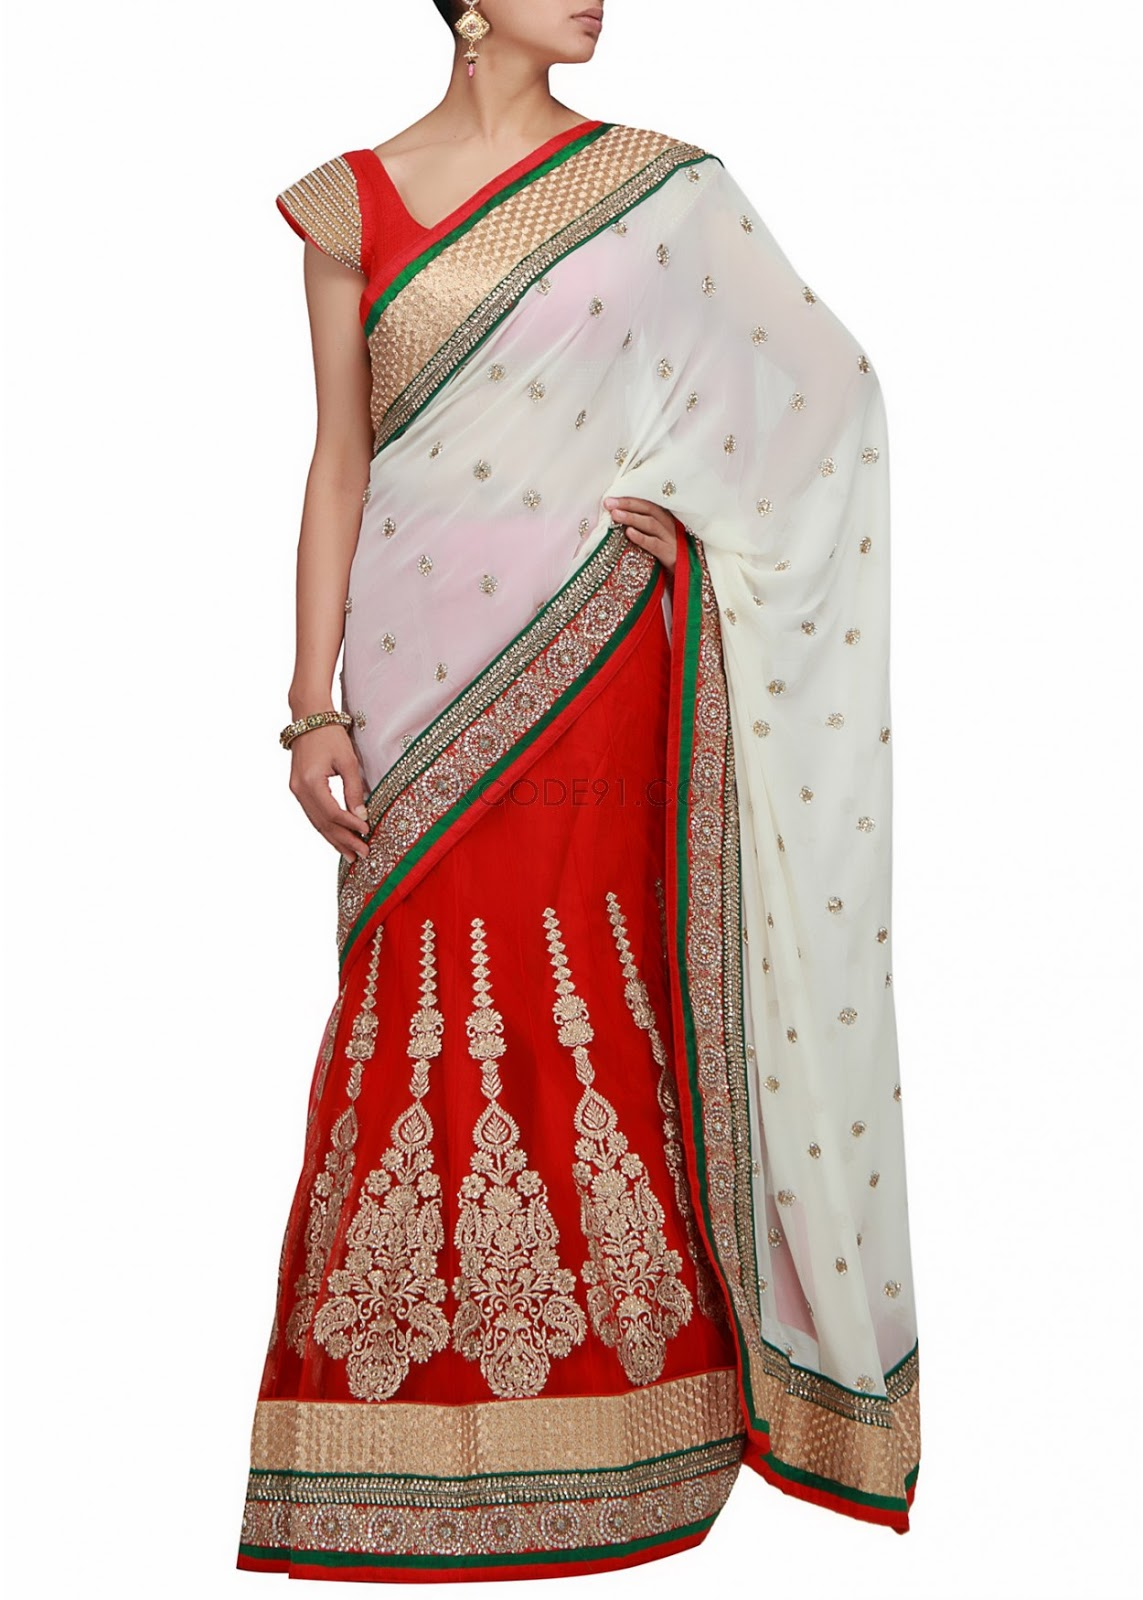 Displaying images for red and white indian wedding dresses